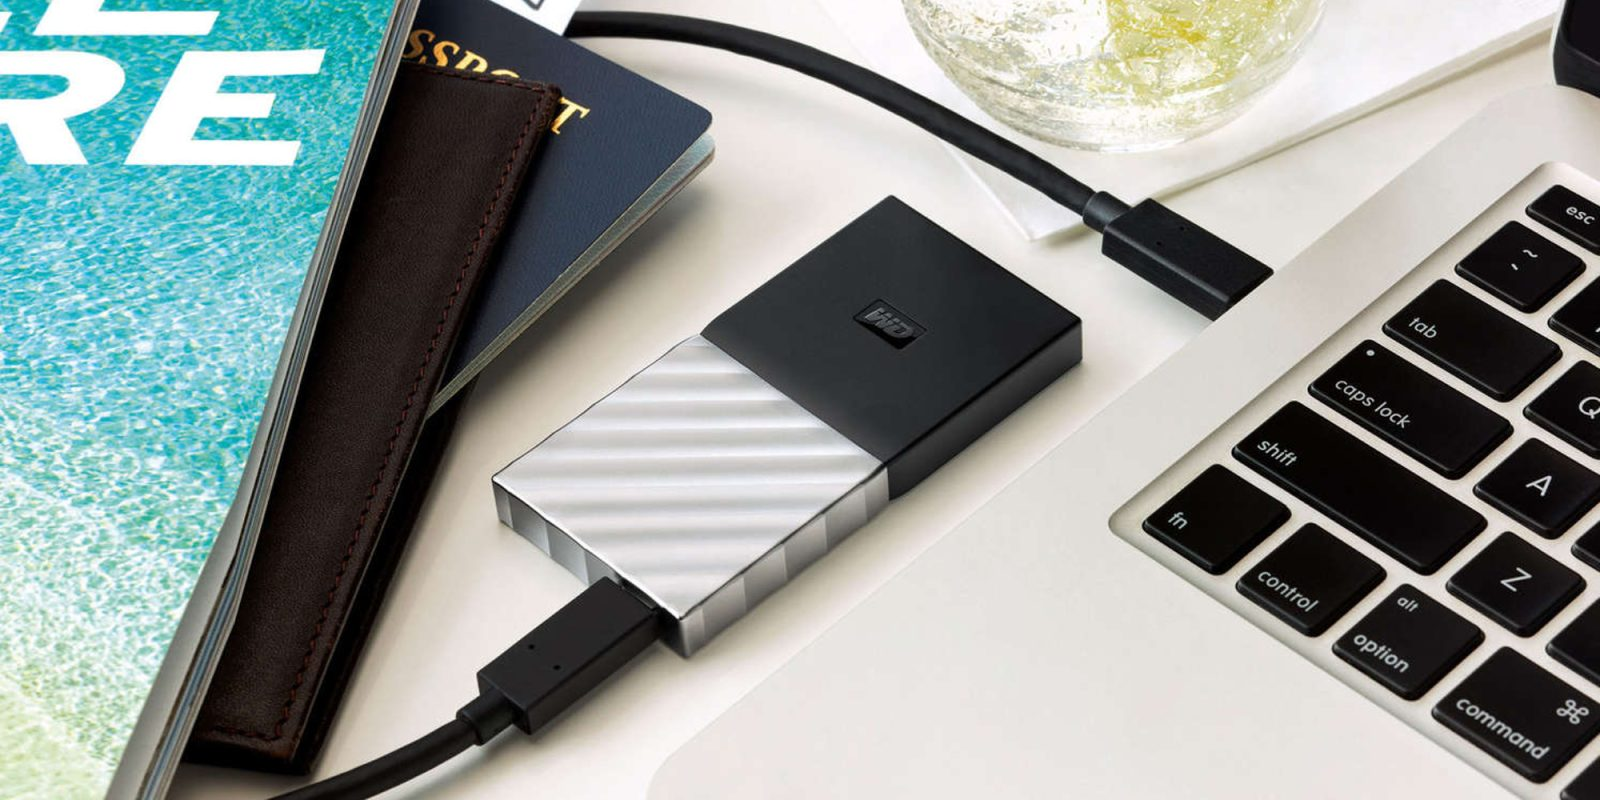 WD's 2TB USB-C + USB 3 1 portable SSD is on sale for $270 - 9to5Toys